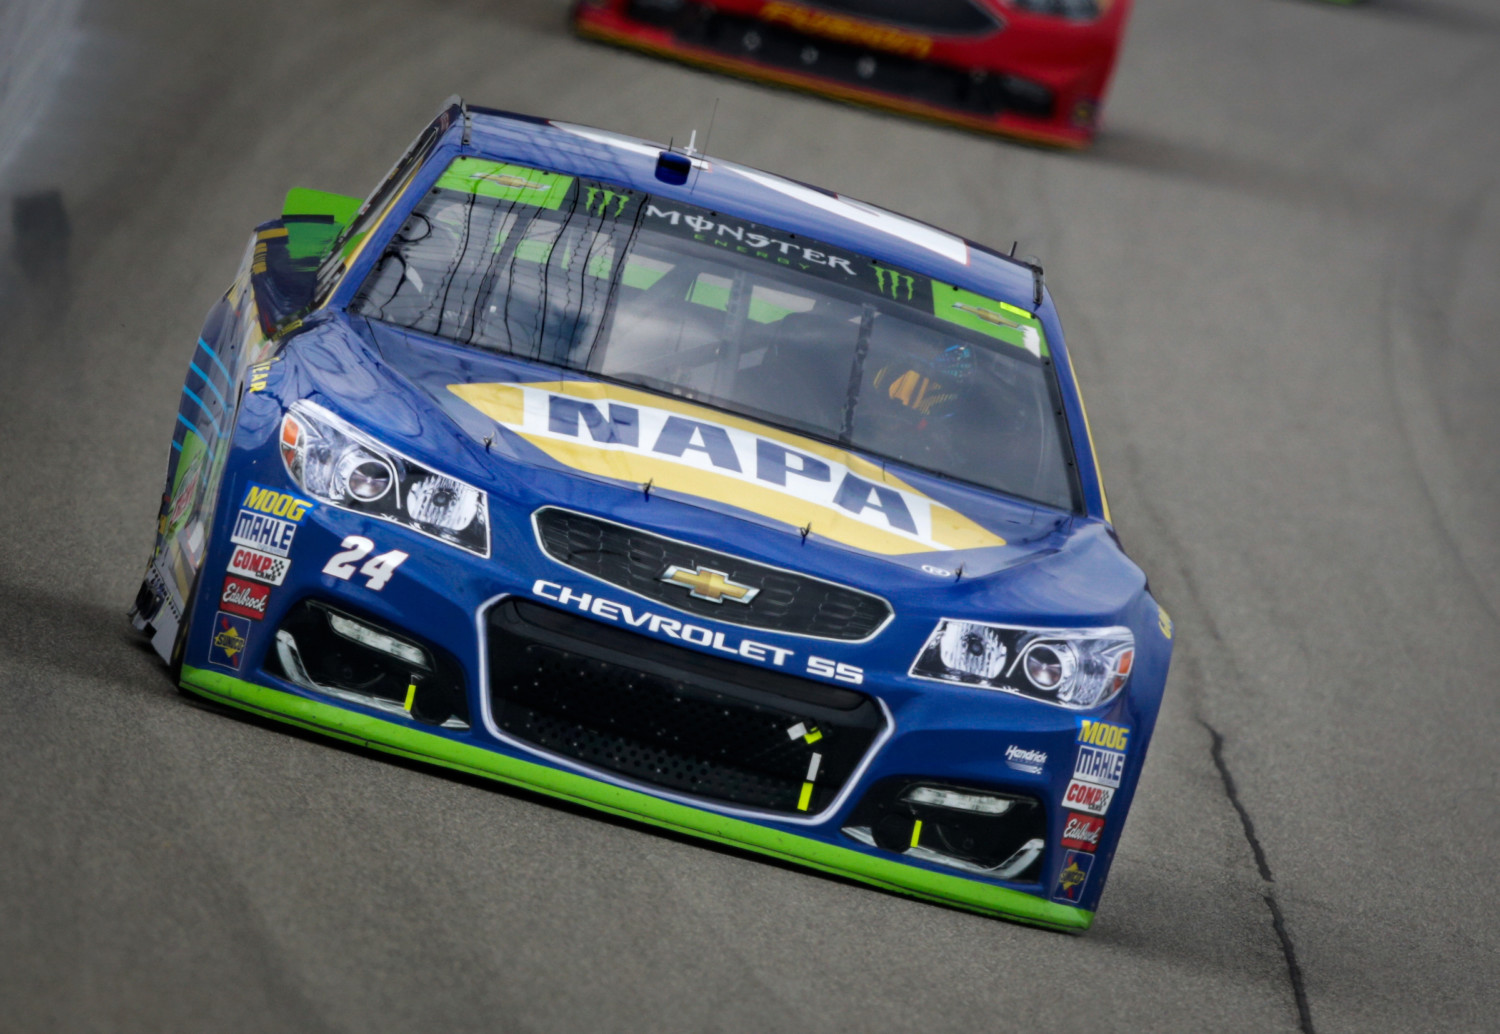 Spoiler Modification at Chicago Leads to Big Penalty for Elliott